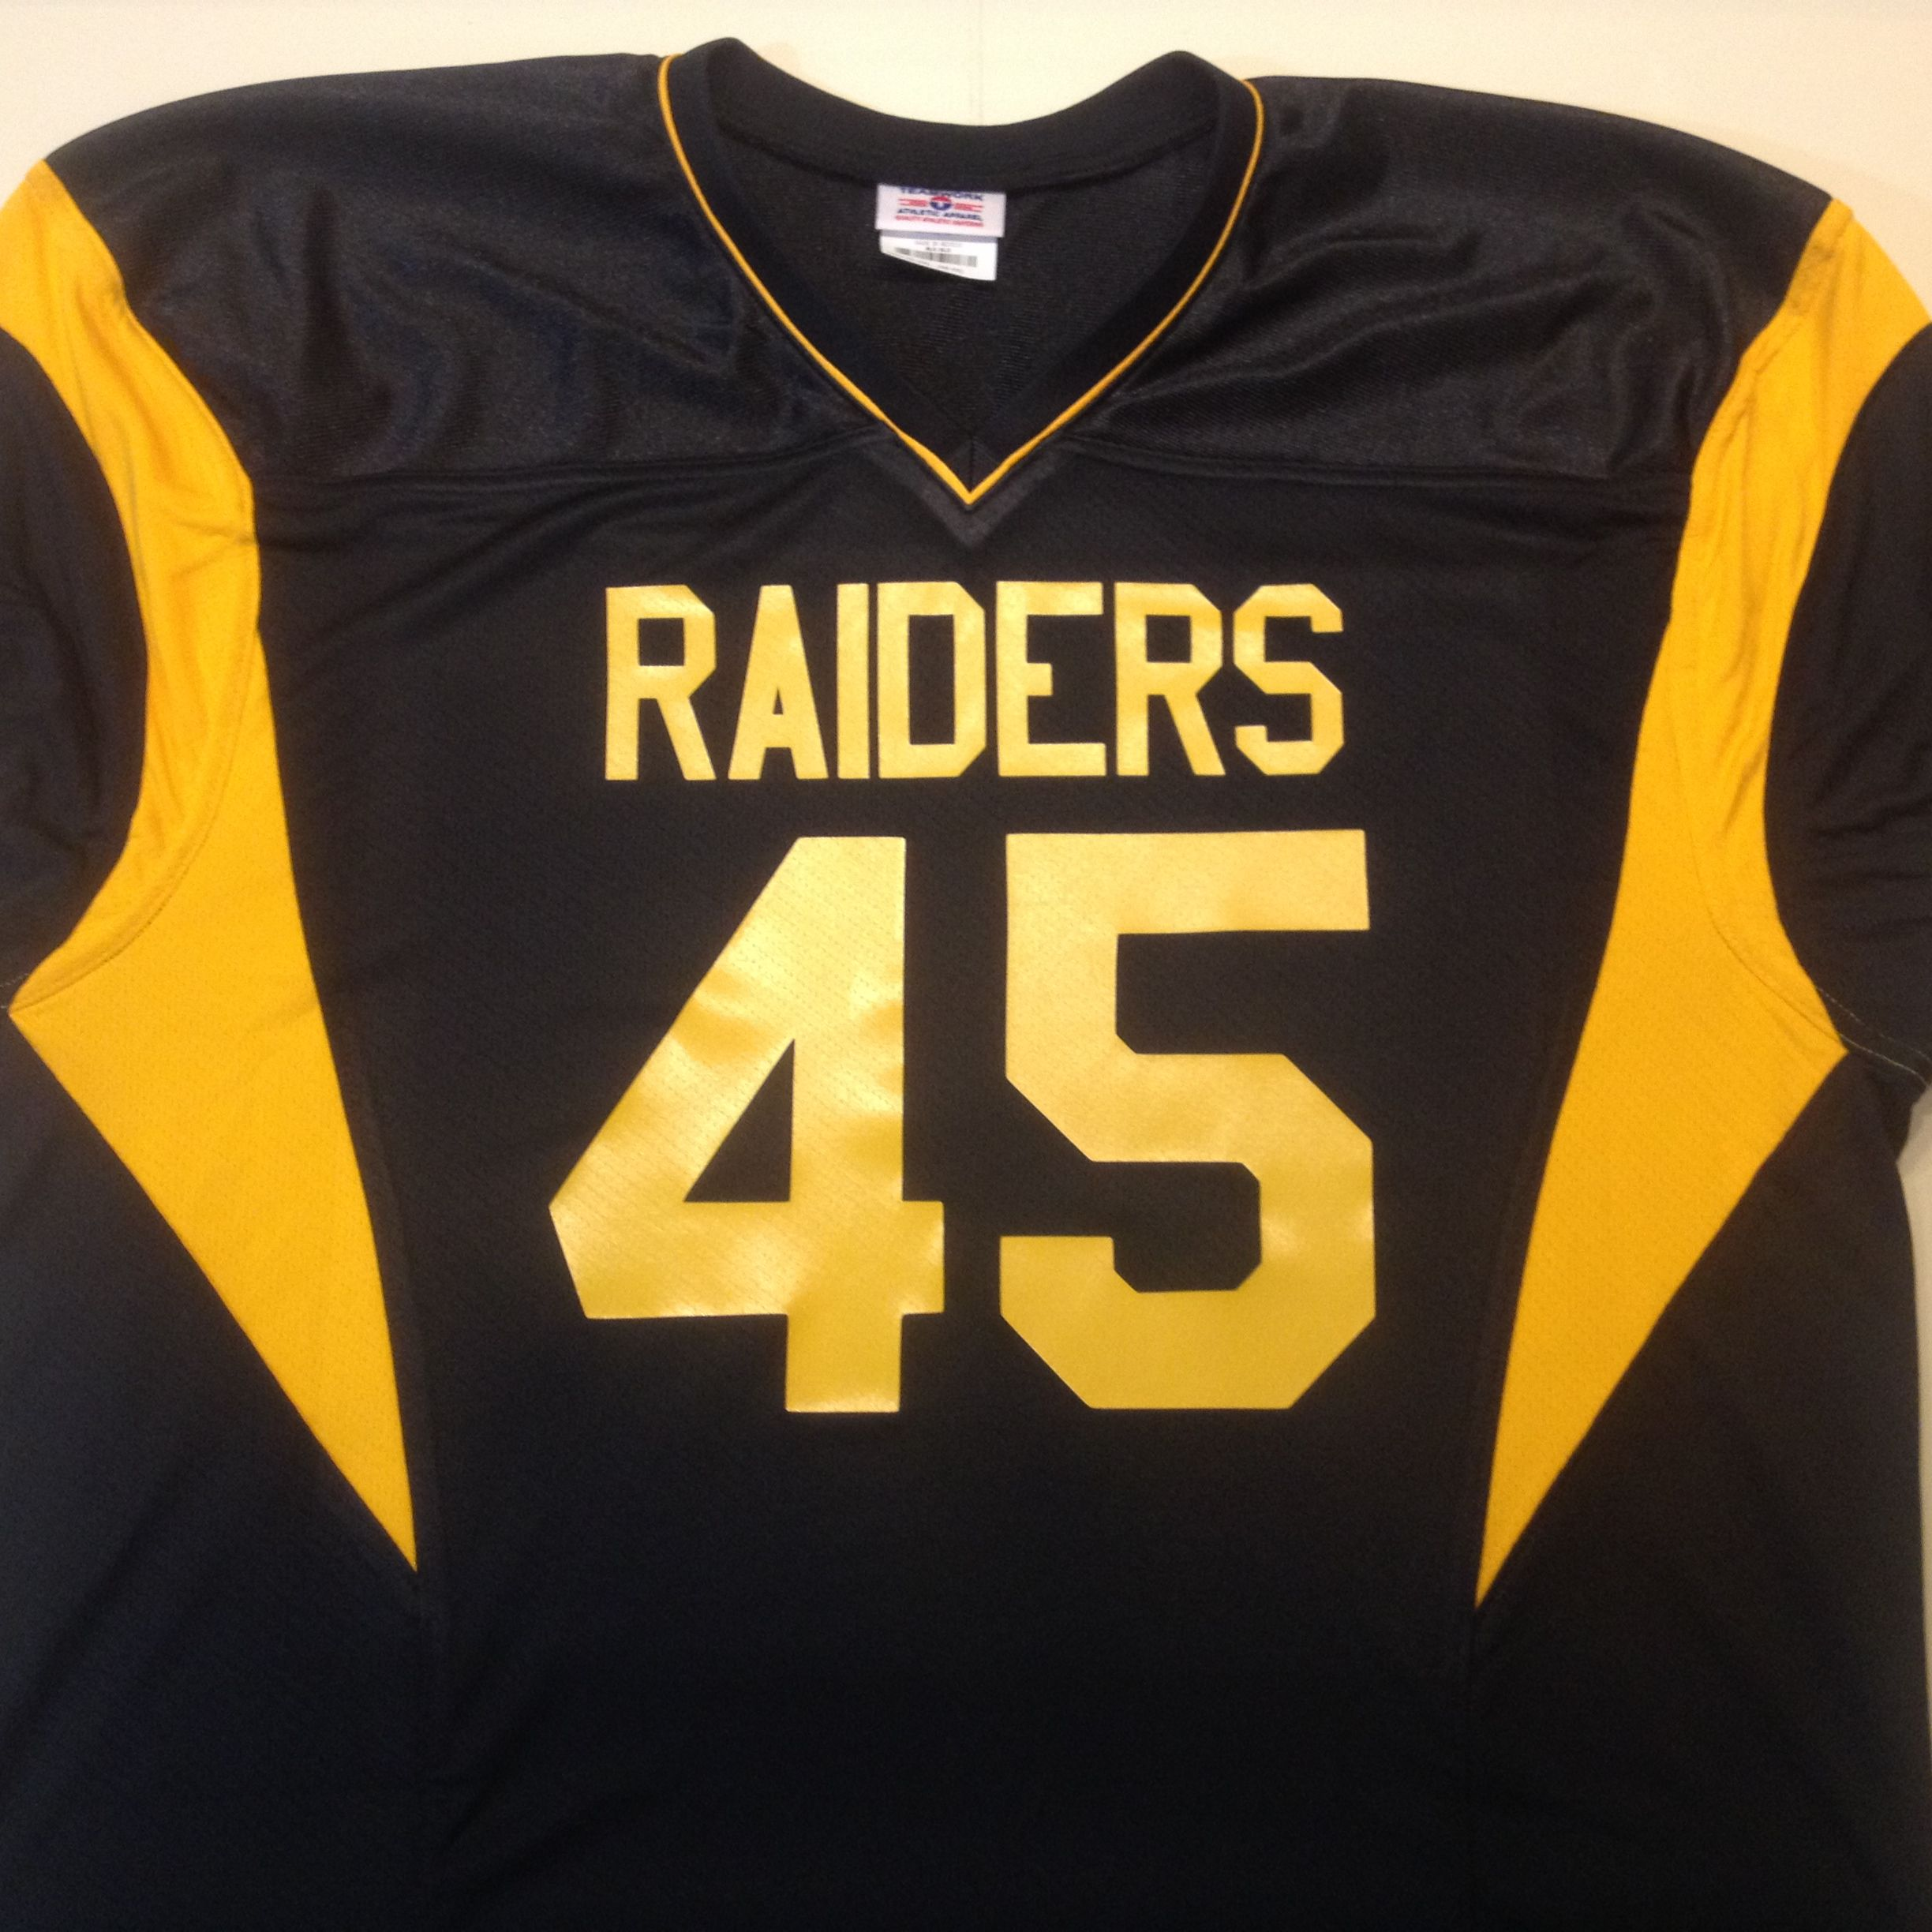 The Pittsburg Raiders If You Can Visualize It You Can Create It This Raiders Inspired Jersey Was Created In Steeler Custom Football Jersey Football Jerseys